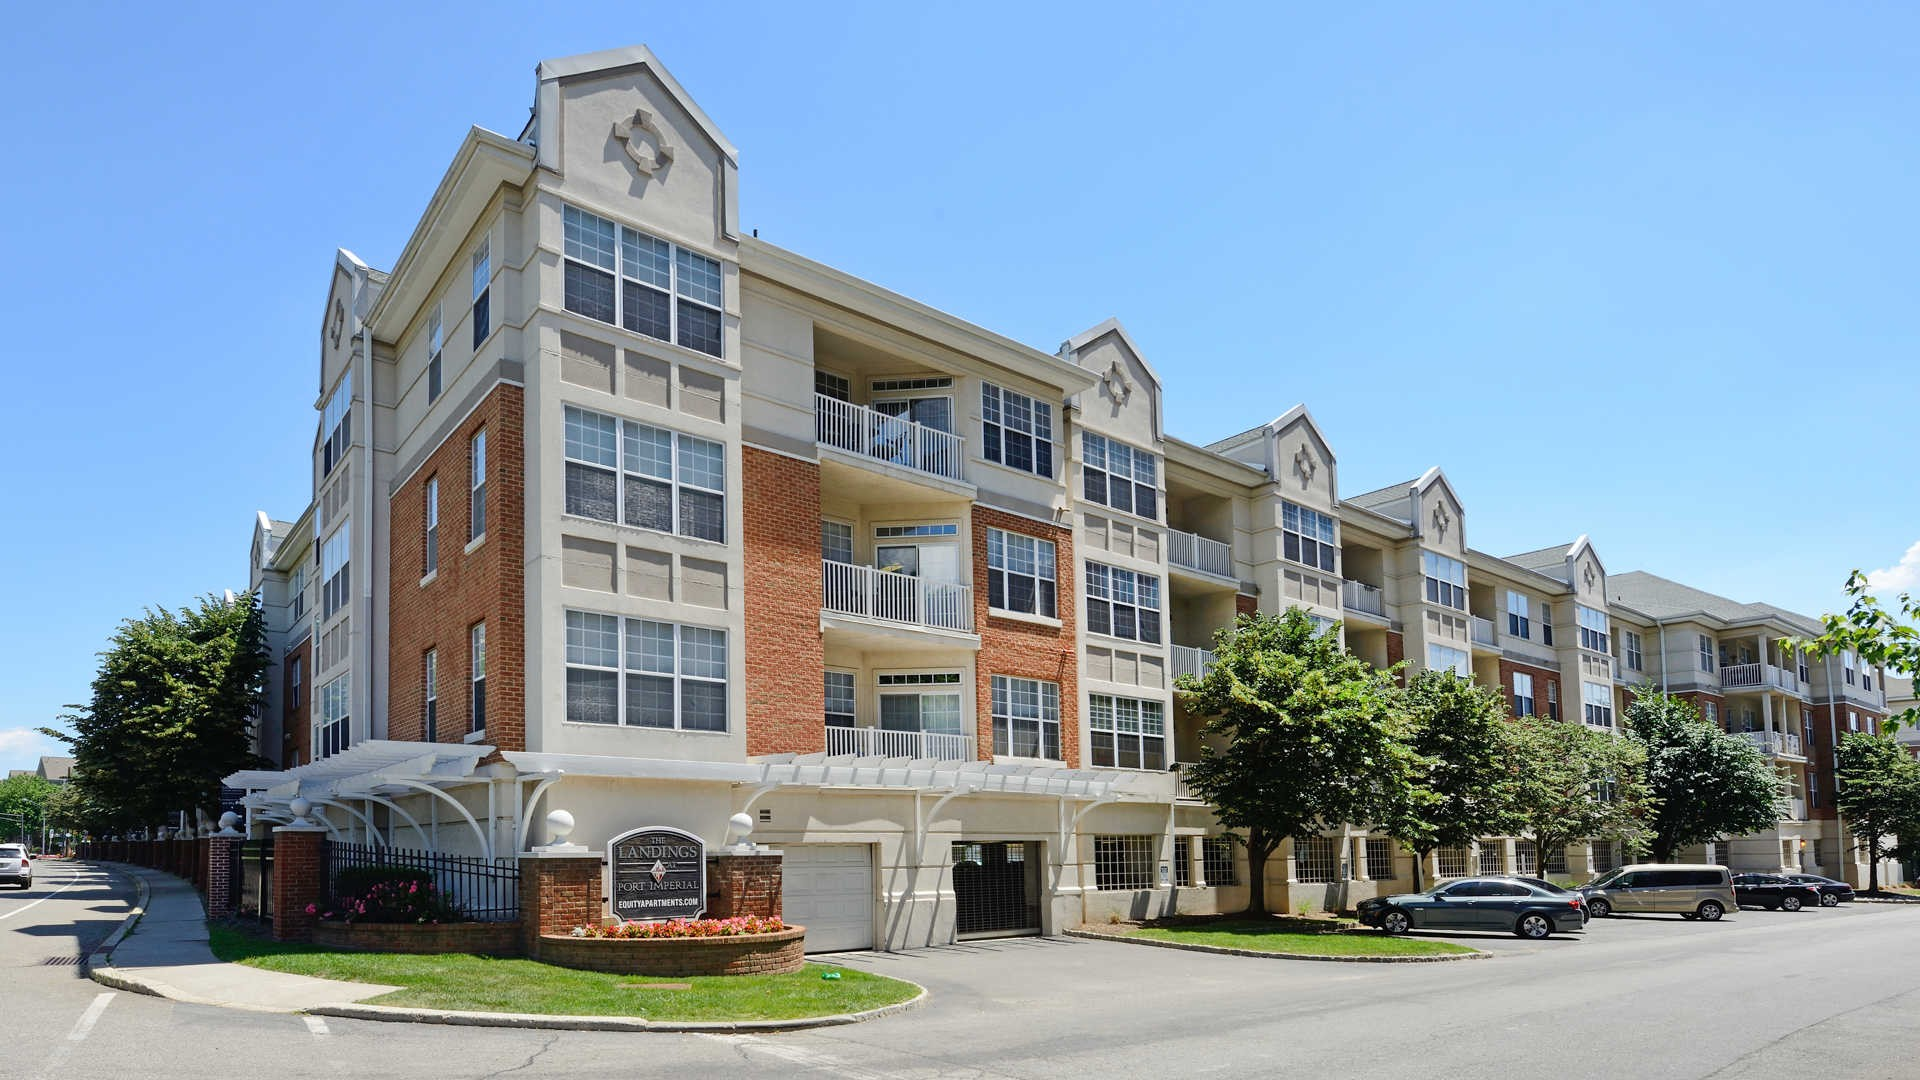 416 apartments for rent in west new york nj zumper